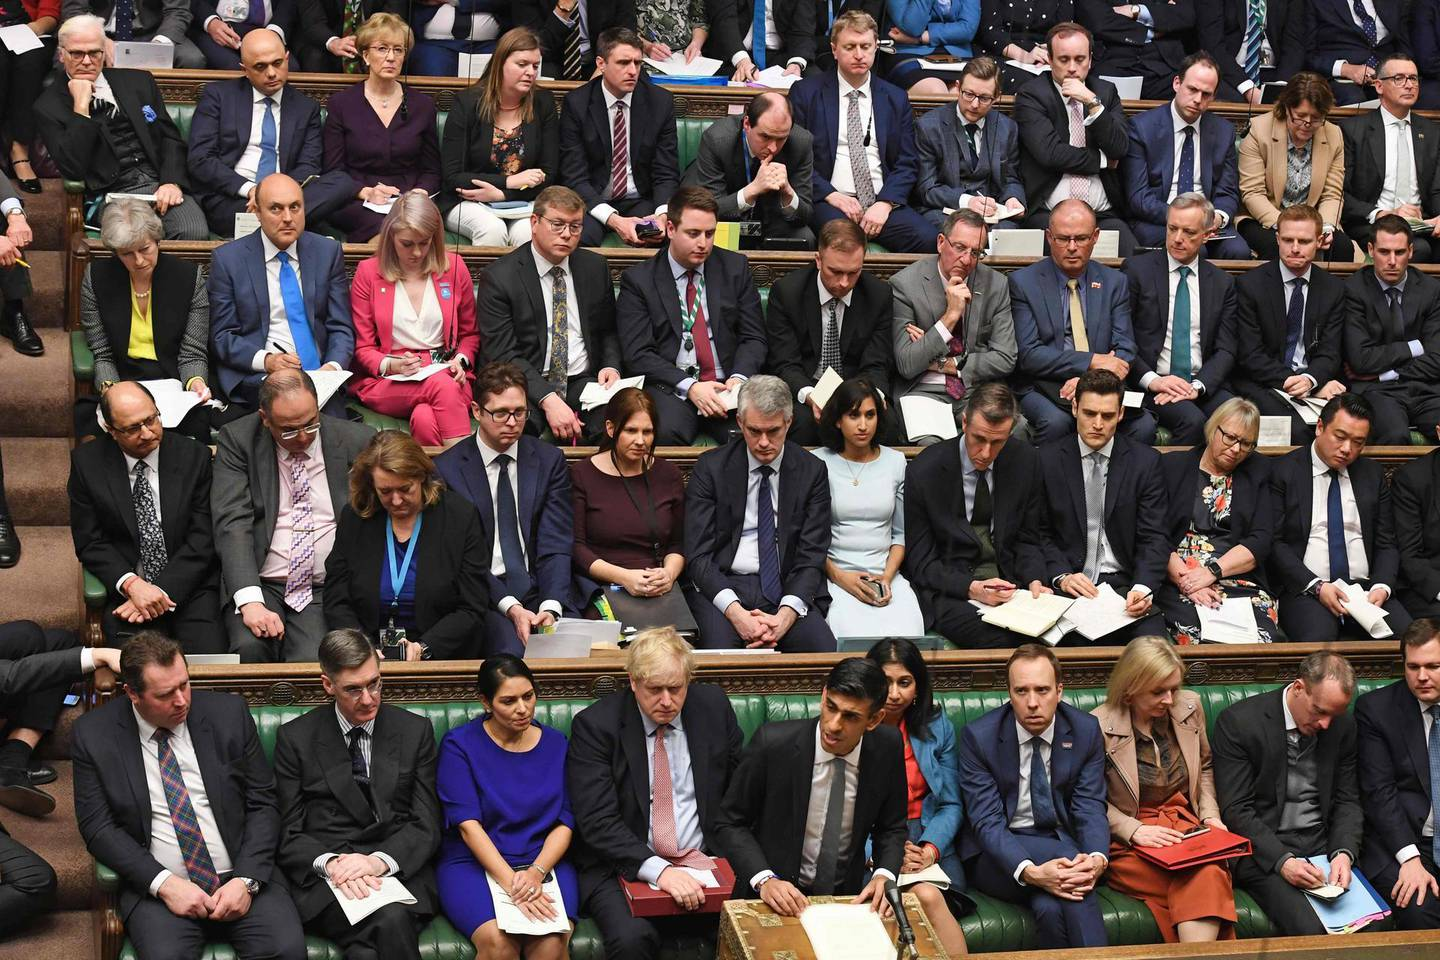 """A handout photograph released by the UK Parliament shows Britain's Chancellor of the Exchequer Rishi Sunak (centre bottom row) delivering his 2020 Spring budget statement in the House of Commons in London on March 11, 2020.  Britain unveils its first post-Brexit budget on Wednesday, with a focus on emergency government funding measures to combat economic fallout from the coronavirus outbreak. - RESTRICTED TO EDITORIAL USE - NO USE FOR ENTERTAINMENT, SATIRICAL, ADVERTISING PURPOSES - MANDATORY CREDIT """" AFP PHOTO / Jessica Taylor /UK Parliament""""  / AFP / UK PARLIAMENT / JESSICA TAYLOR / RESTRICTED TO EDITORIAL USE - NO USE FOR ENTERTAINMENT, SATIRICAL, ADVERTISING PURPOSES - MANDATORY CREDIT """" AFP PHOTO / Jessica Taylor /UK Parliament"""""""